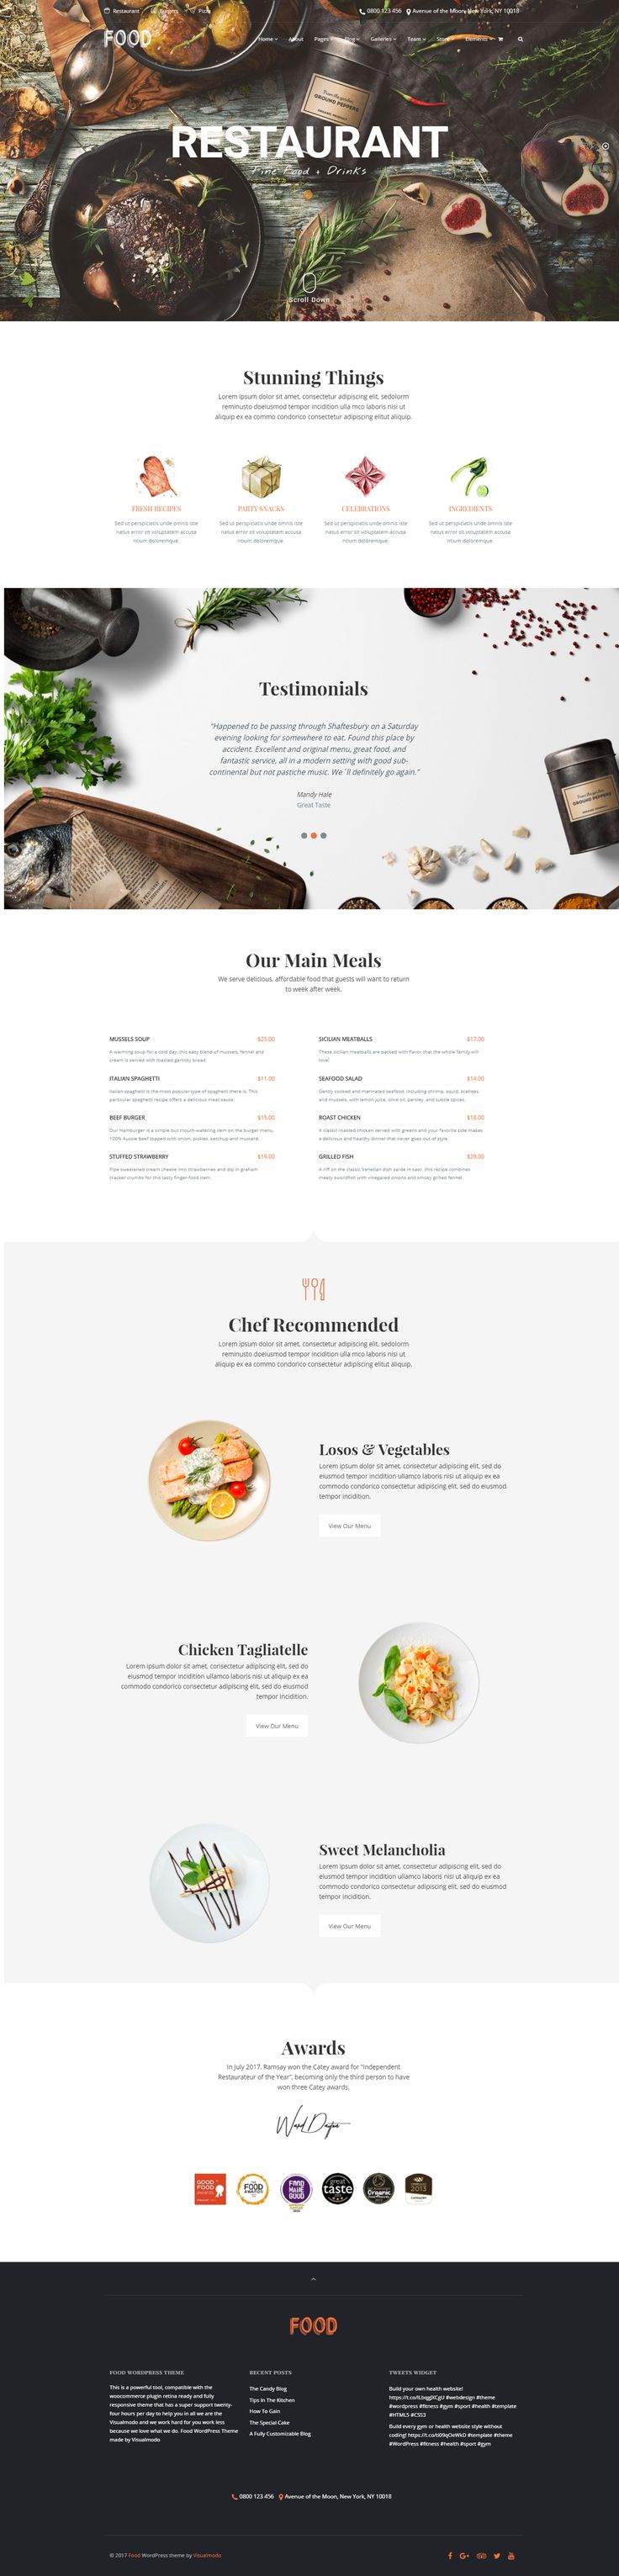 Food WordPress Theme - Restaurant, Pub & Bar Template - Build every restaurant site design without code knowledge - A Delicious Restaurant & Candy Shop Theme https://visualmodo.com/theme/food-wordpress-theme/    #webdesign #HTML5 #CSS3 #template #plugins #theme #wordpress #food #responsive #restaurant #pub #bar #candy #flexible #pizza #chef    Build your own website and grow your brand! Theme demonstrative website http://wordpressthemes.visualmodo.com/?theme=Food